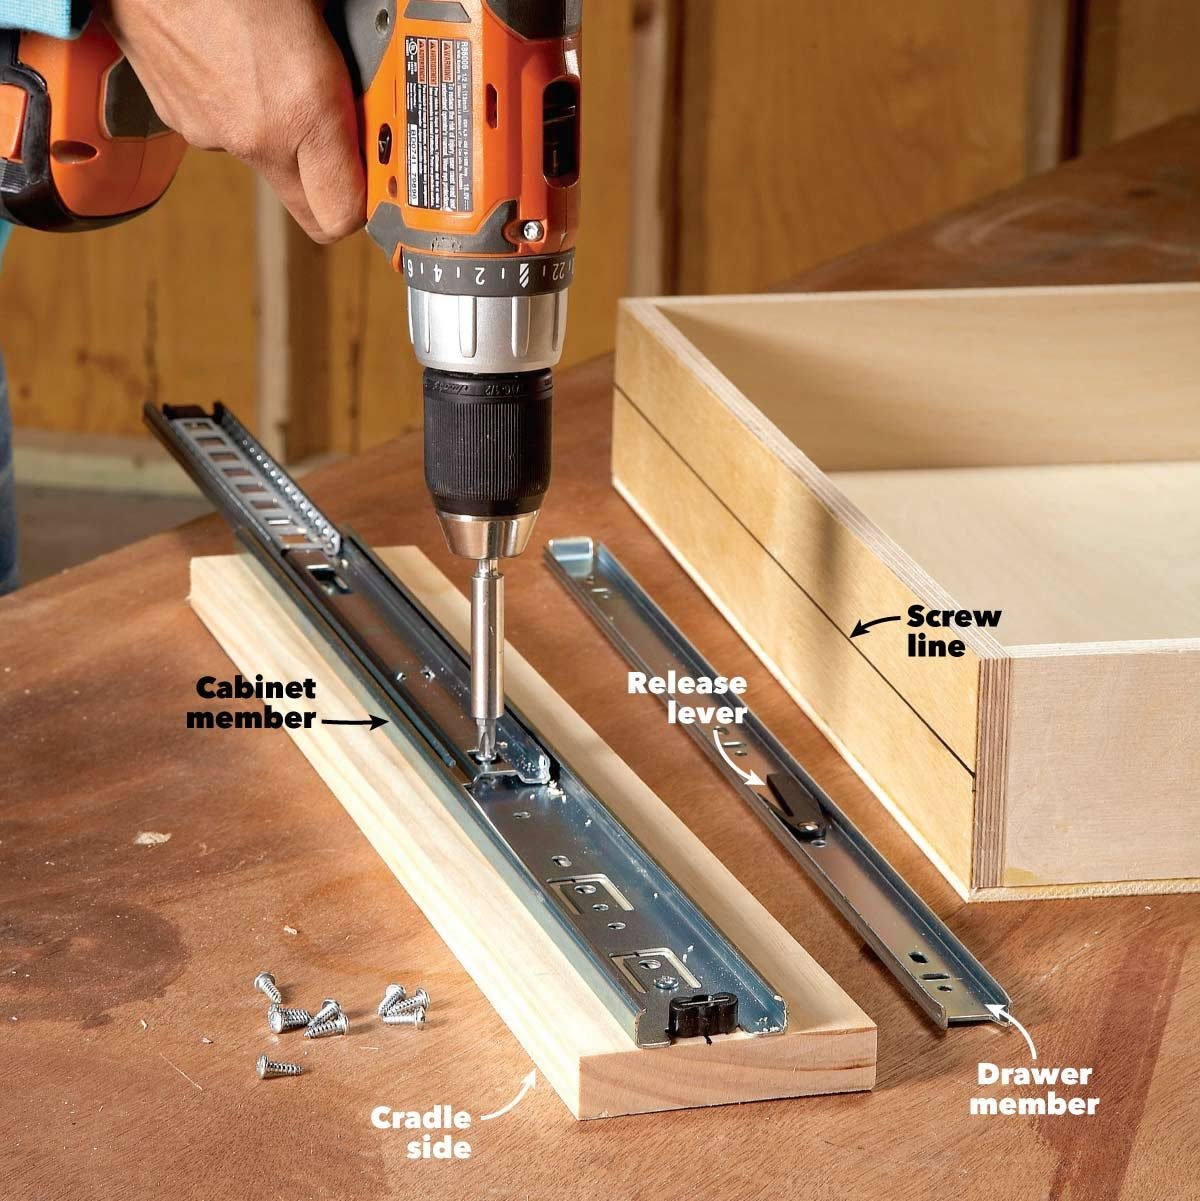 Kitchen Cabinet Drawer Kits: How To Build Under-Cabinet Drawers & Increase Kitchen